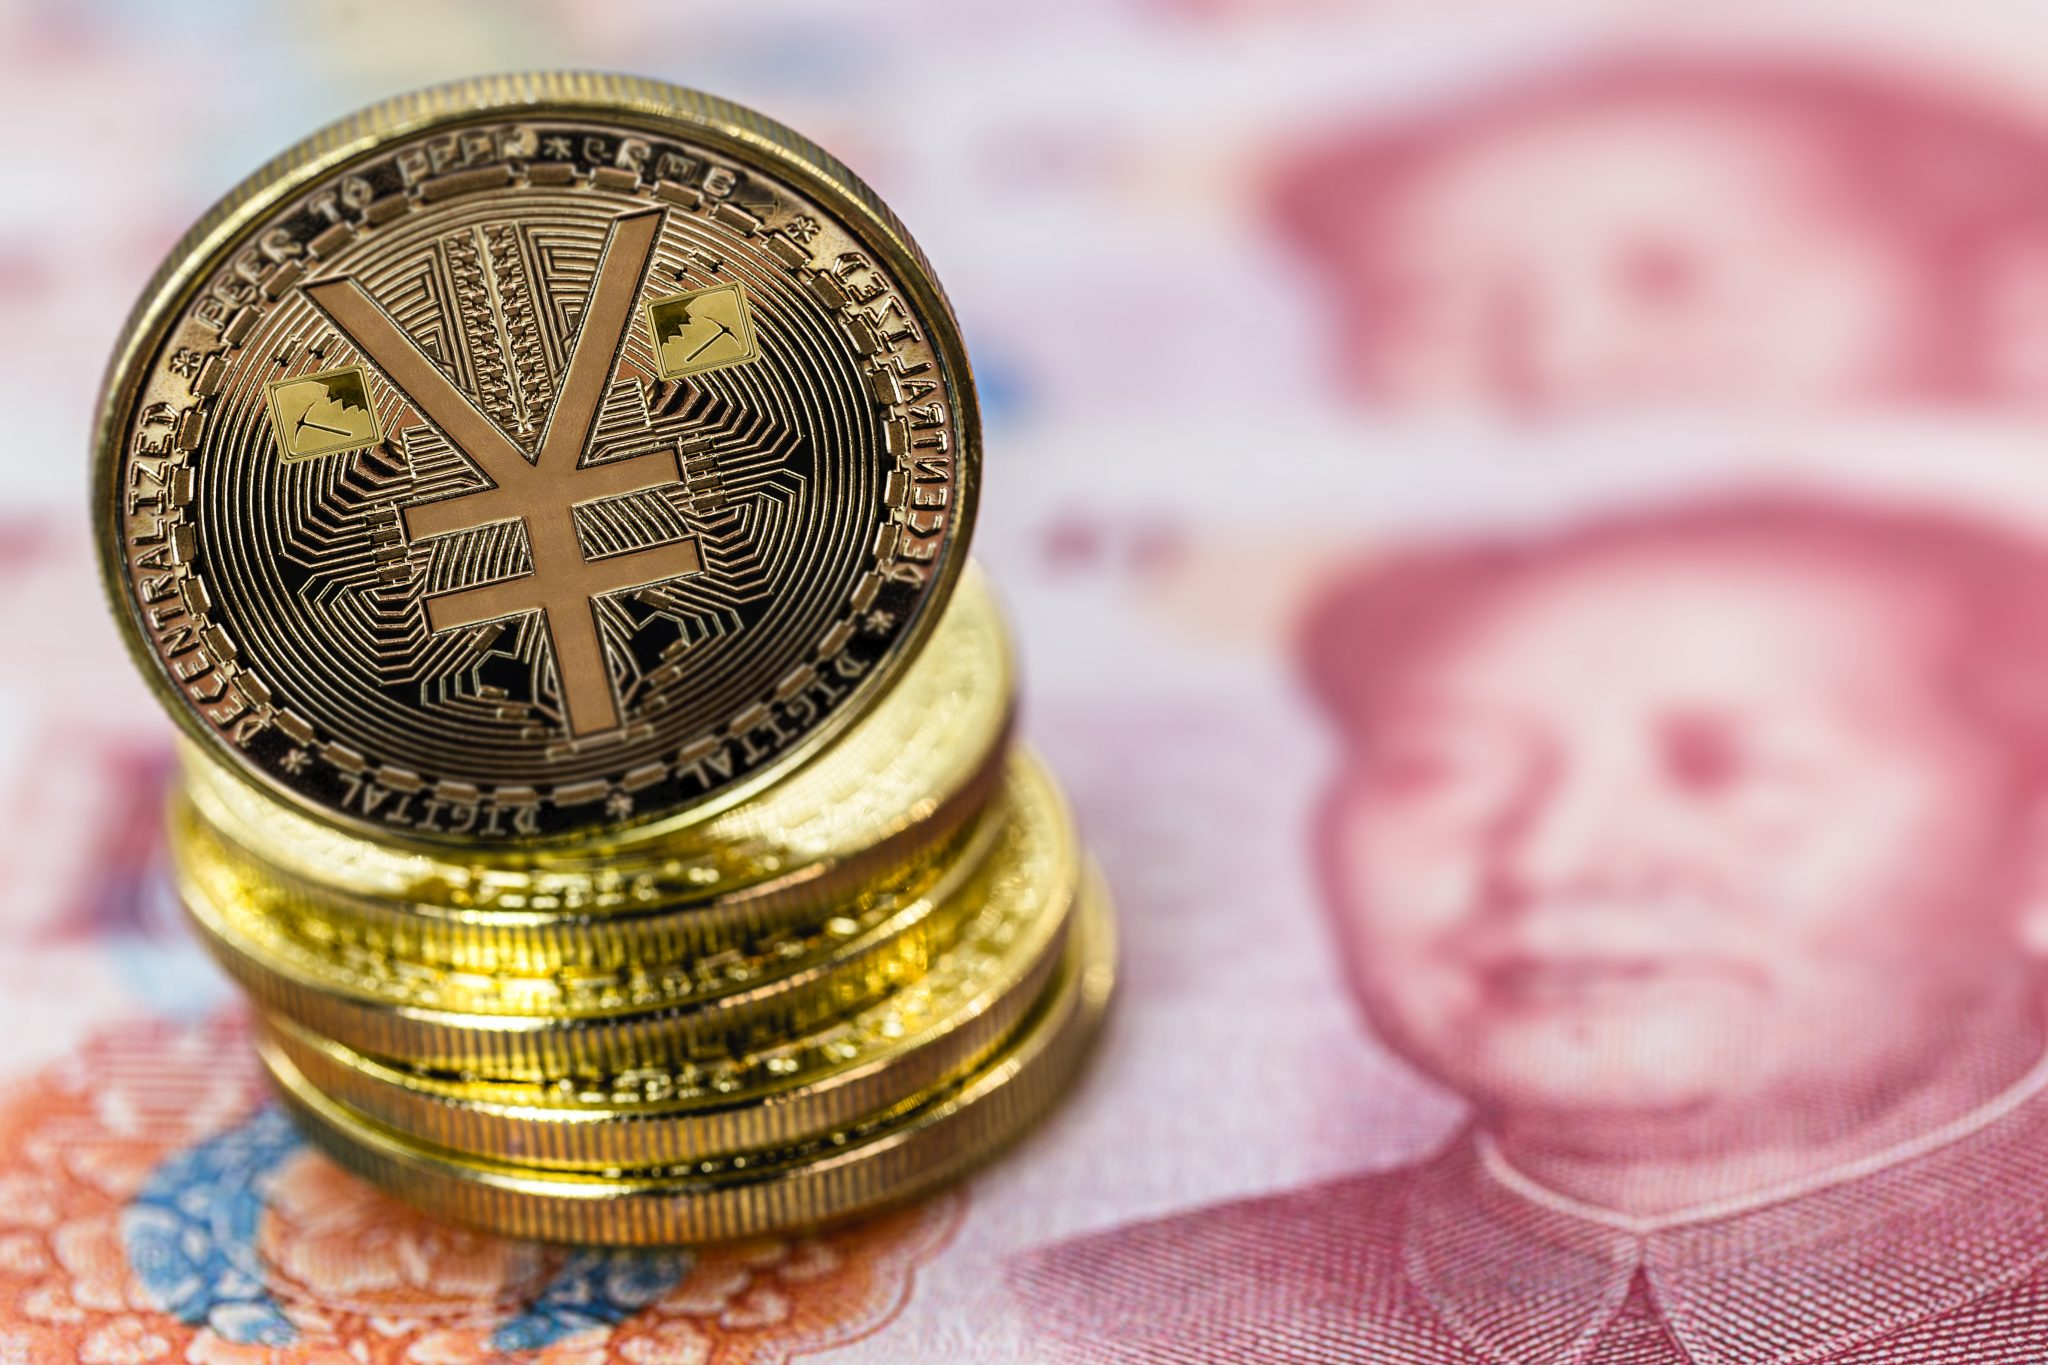 Chinese digital currency, conceptual image of the digital Yuan, or e-RMB, on old yuan banknotes